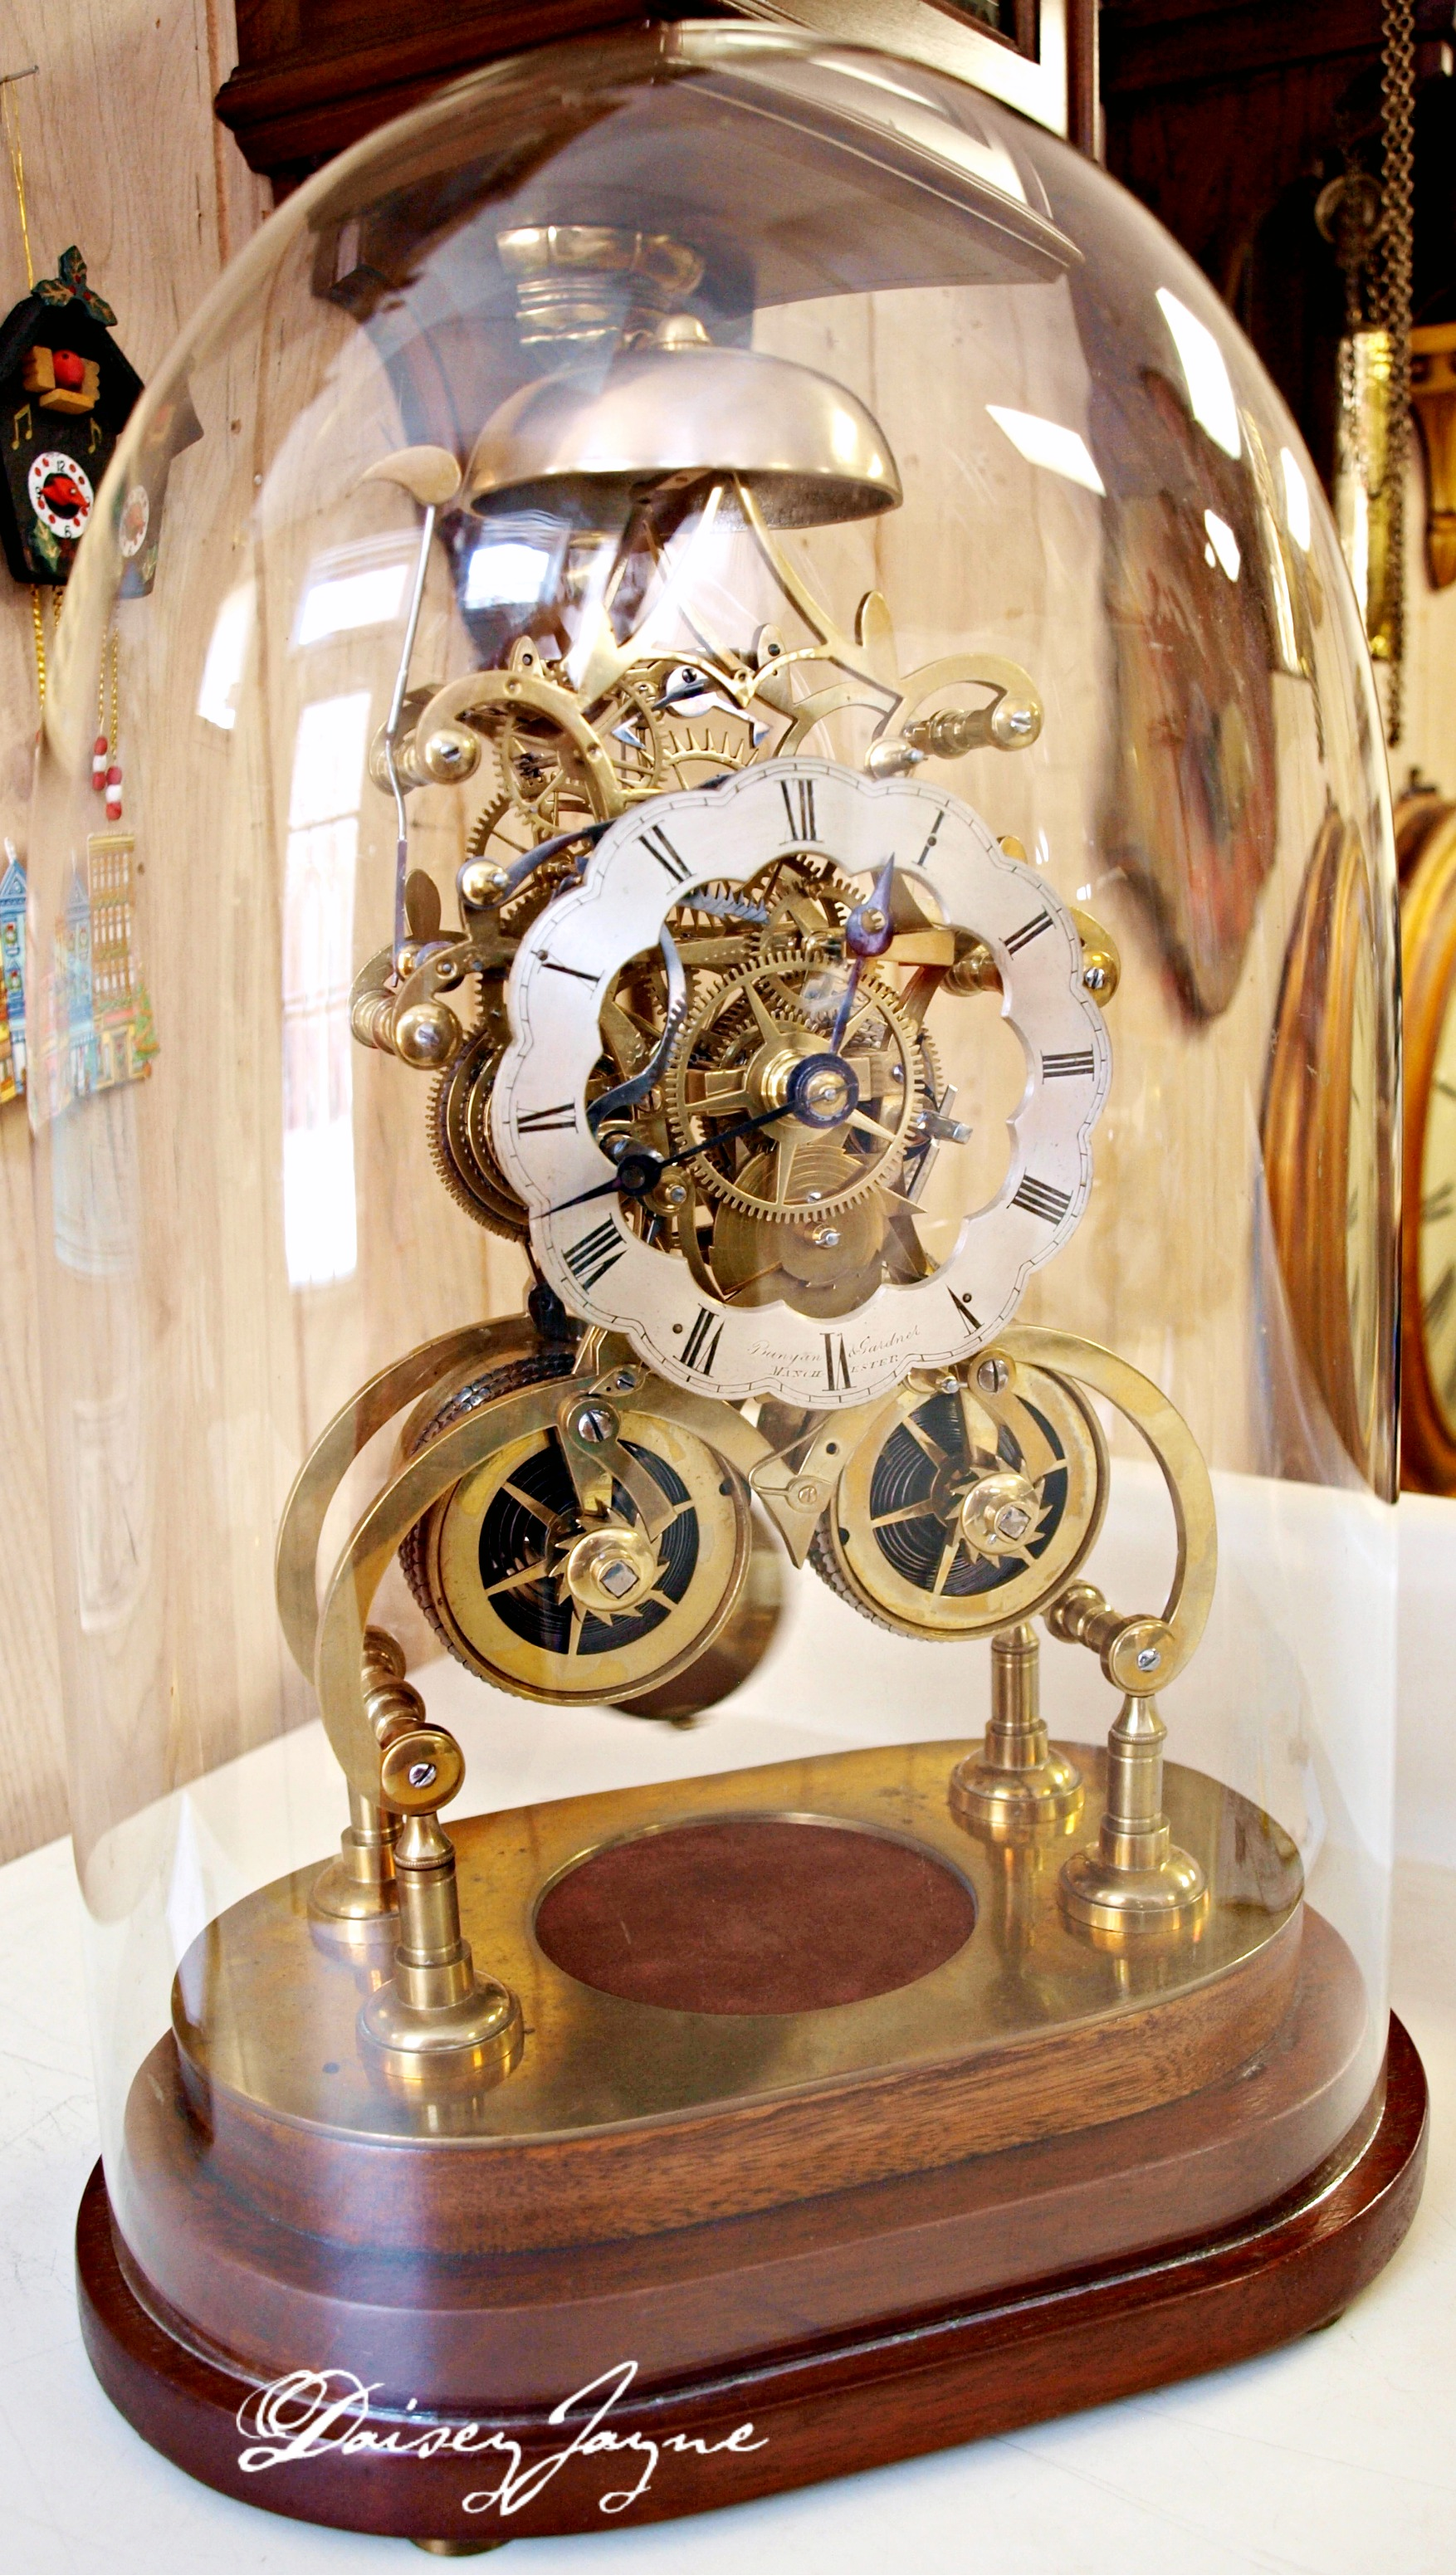 The antique gallery clock - Daisey Jayne